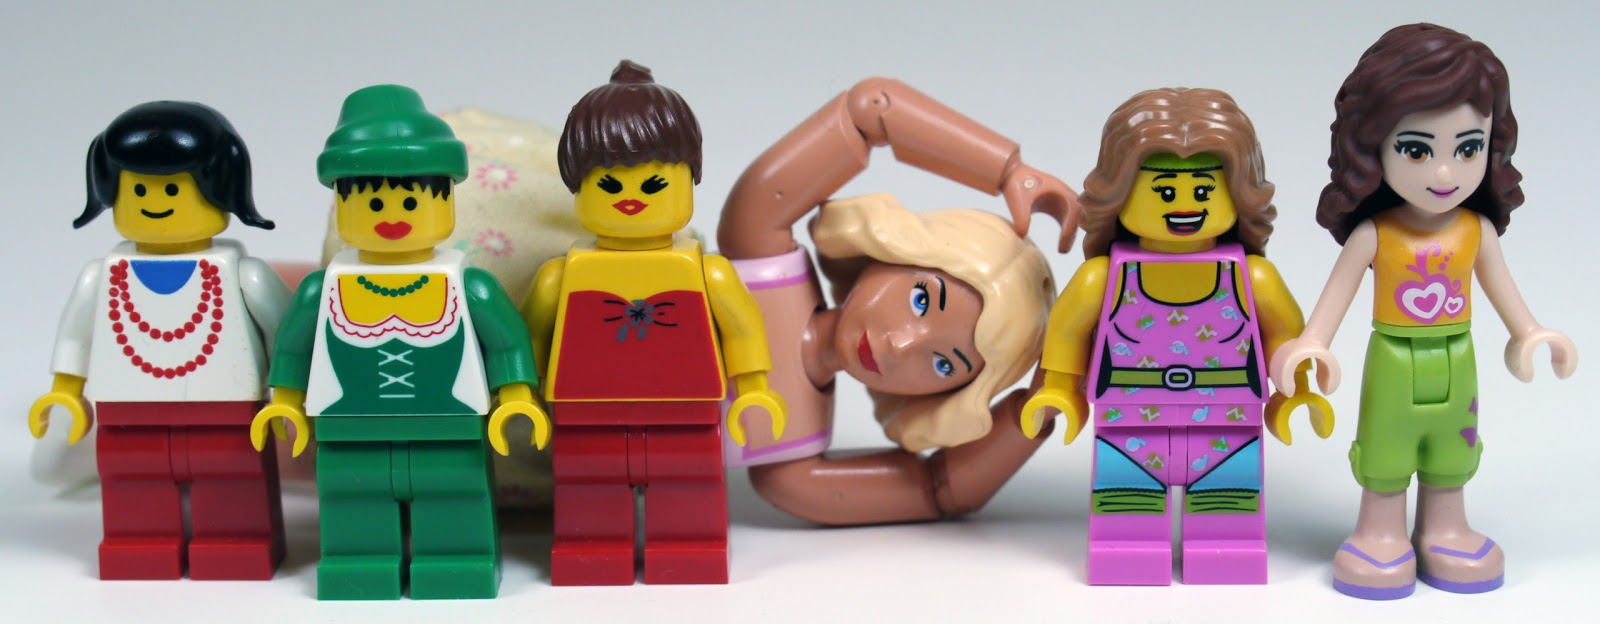 Thinking Brickly The Lego Gender Gap A Historical